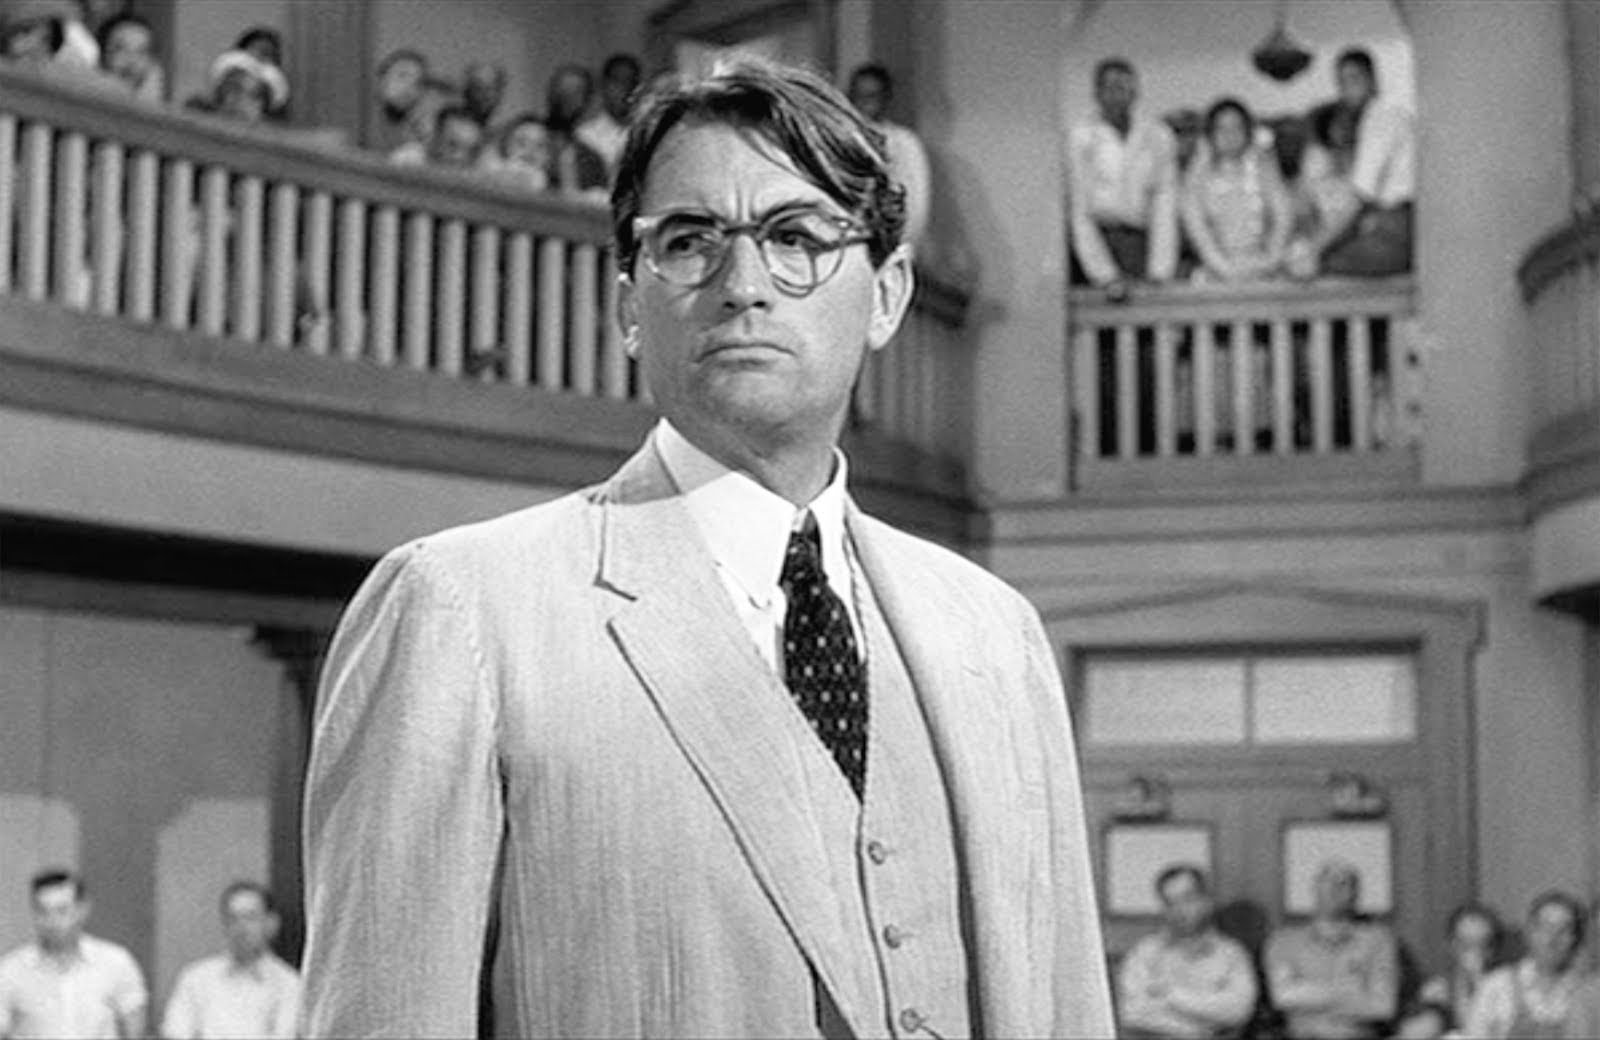 Atticus Finch has a dark side in the new Harper Lee novel, and the internet has FEELINGS about this